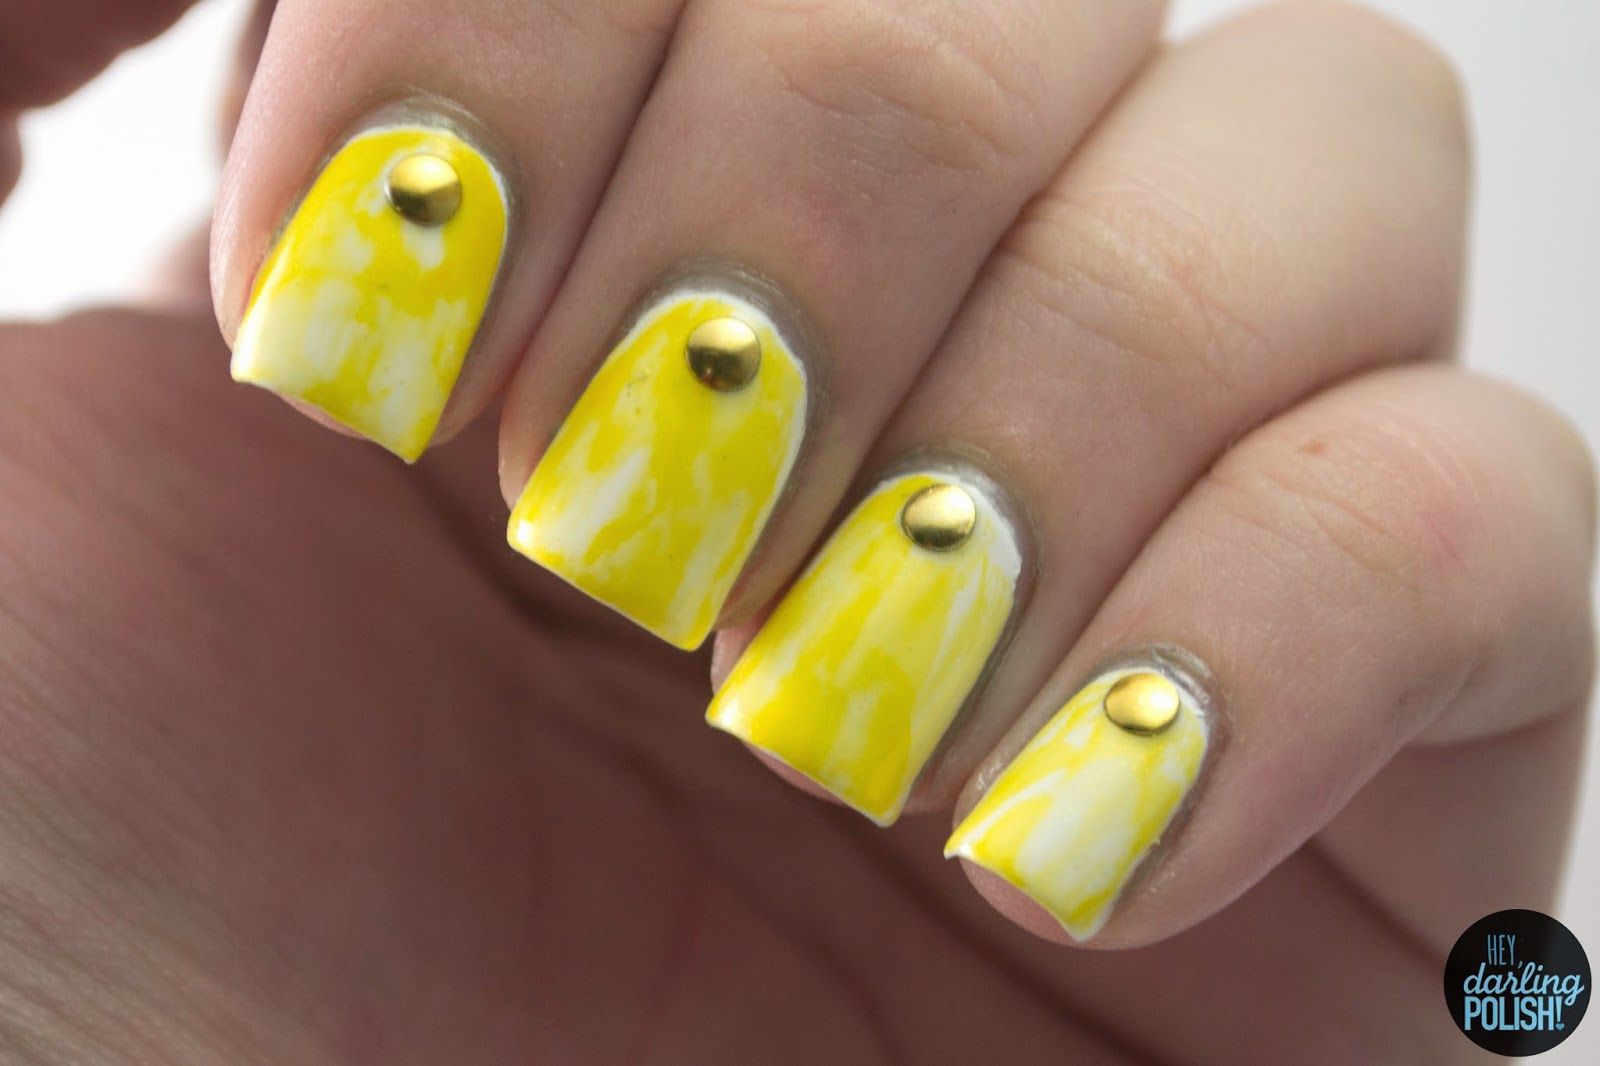 nails, nail art, nail polish, polish, yellow, hey darling polish, studs, golden oldie thursdays